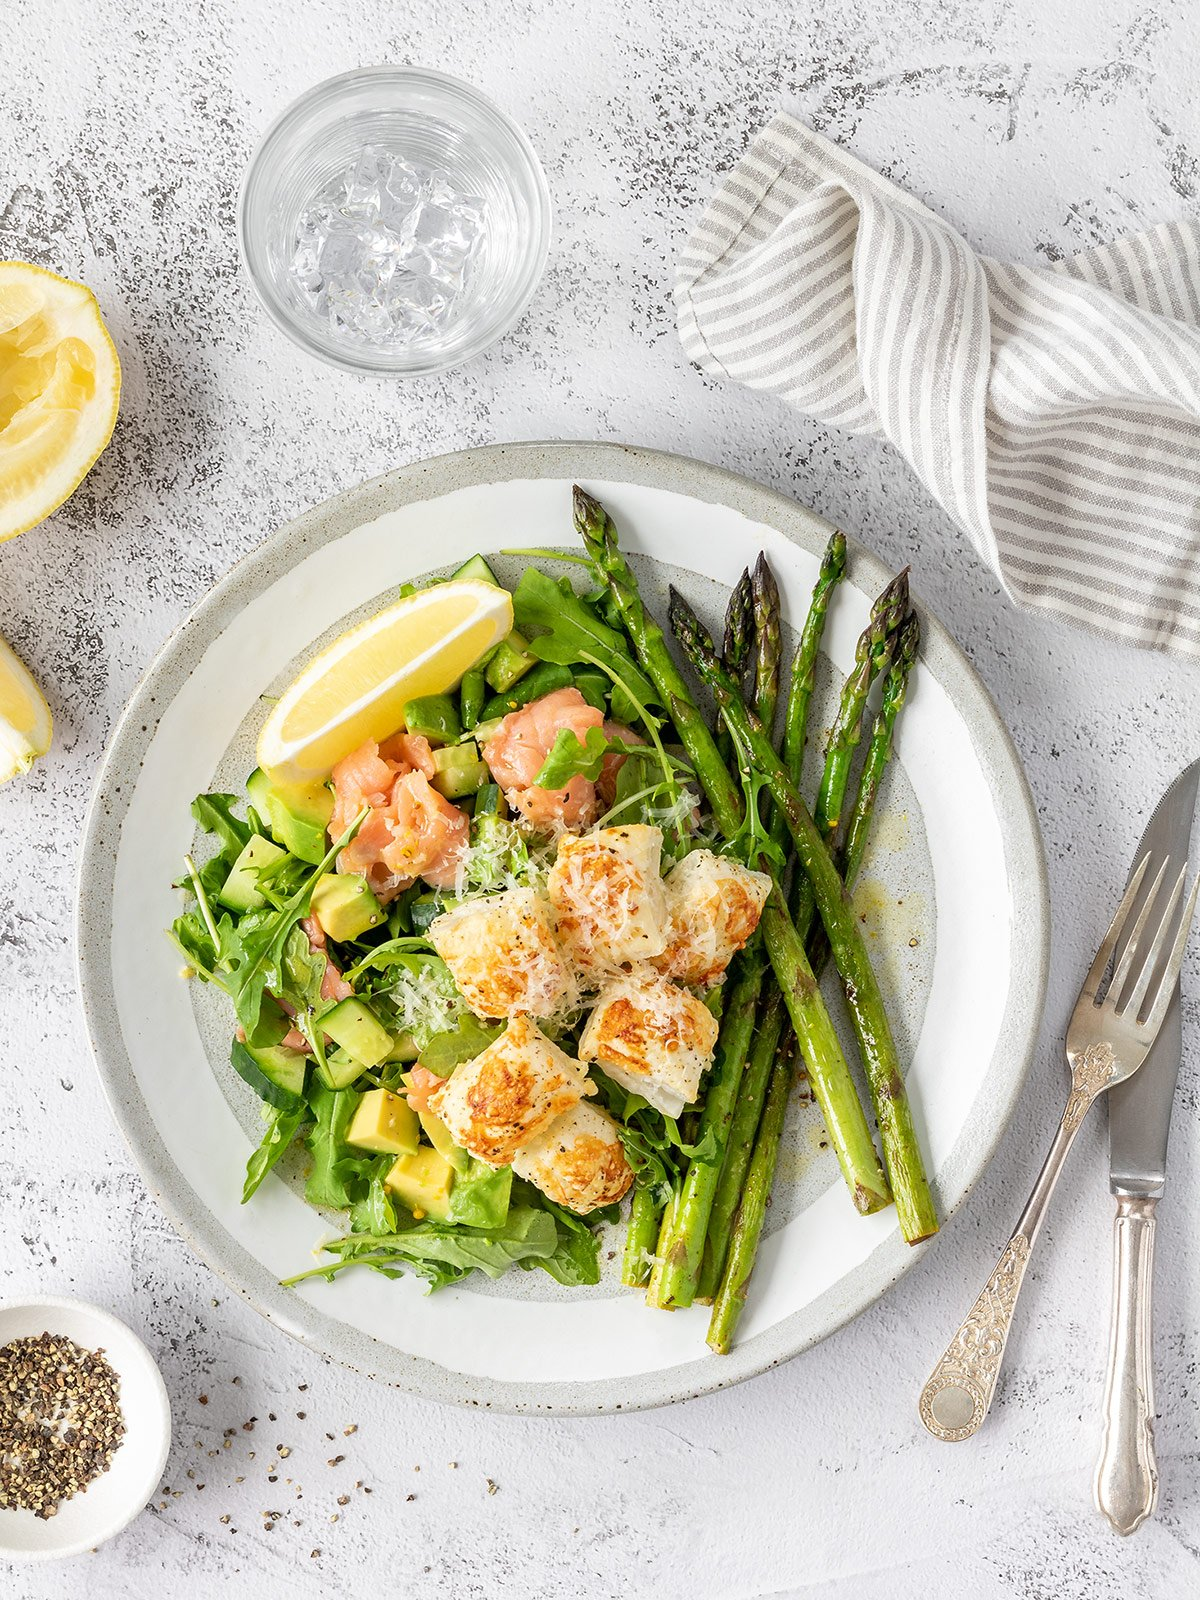 Smoked salmon salad with avocado, cucumber, asparagus and parmesan puff pastry croutons.